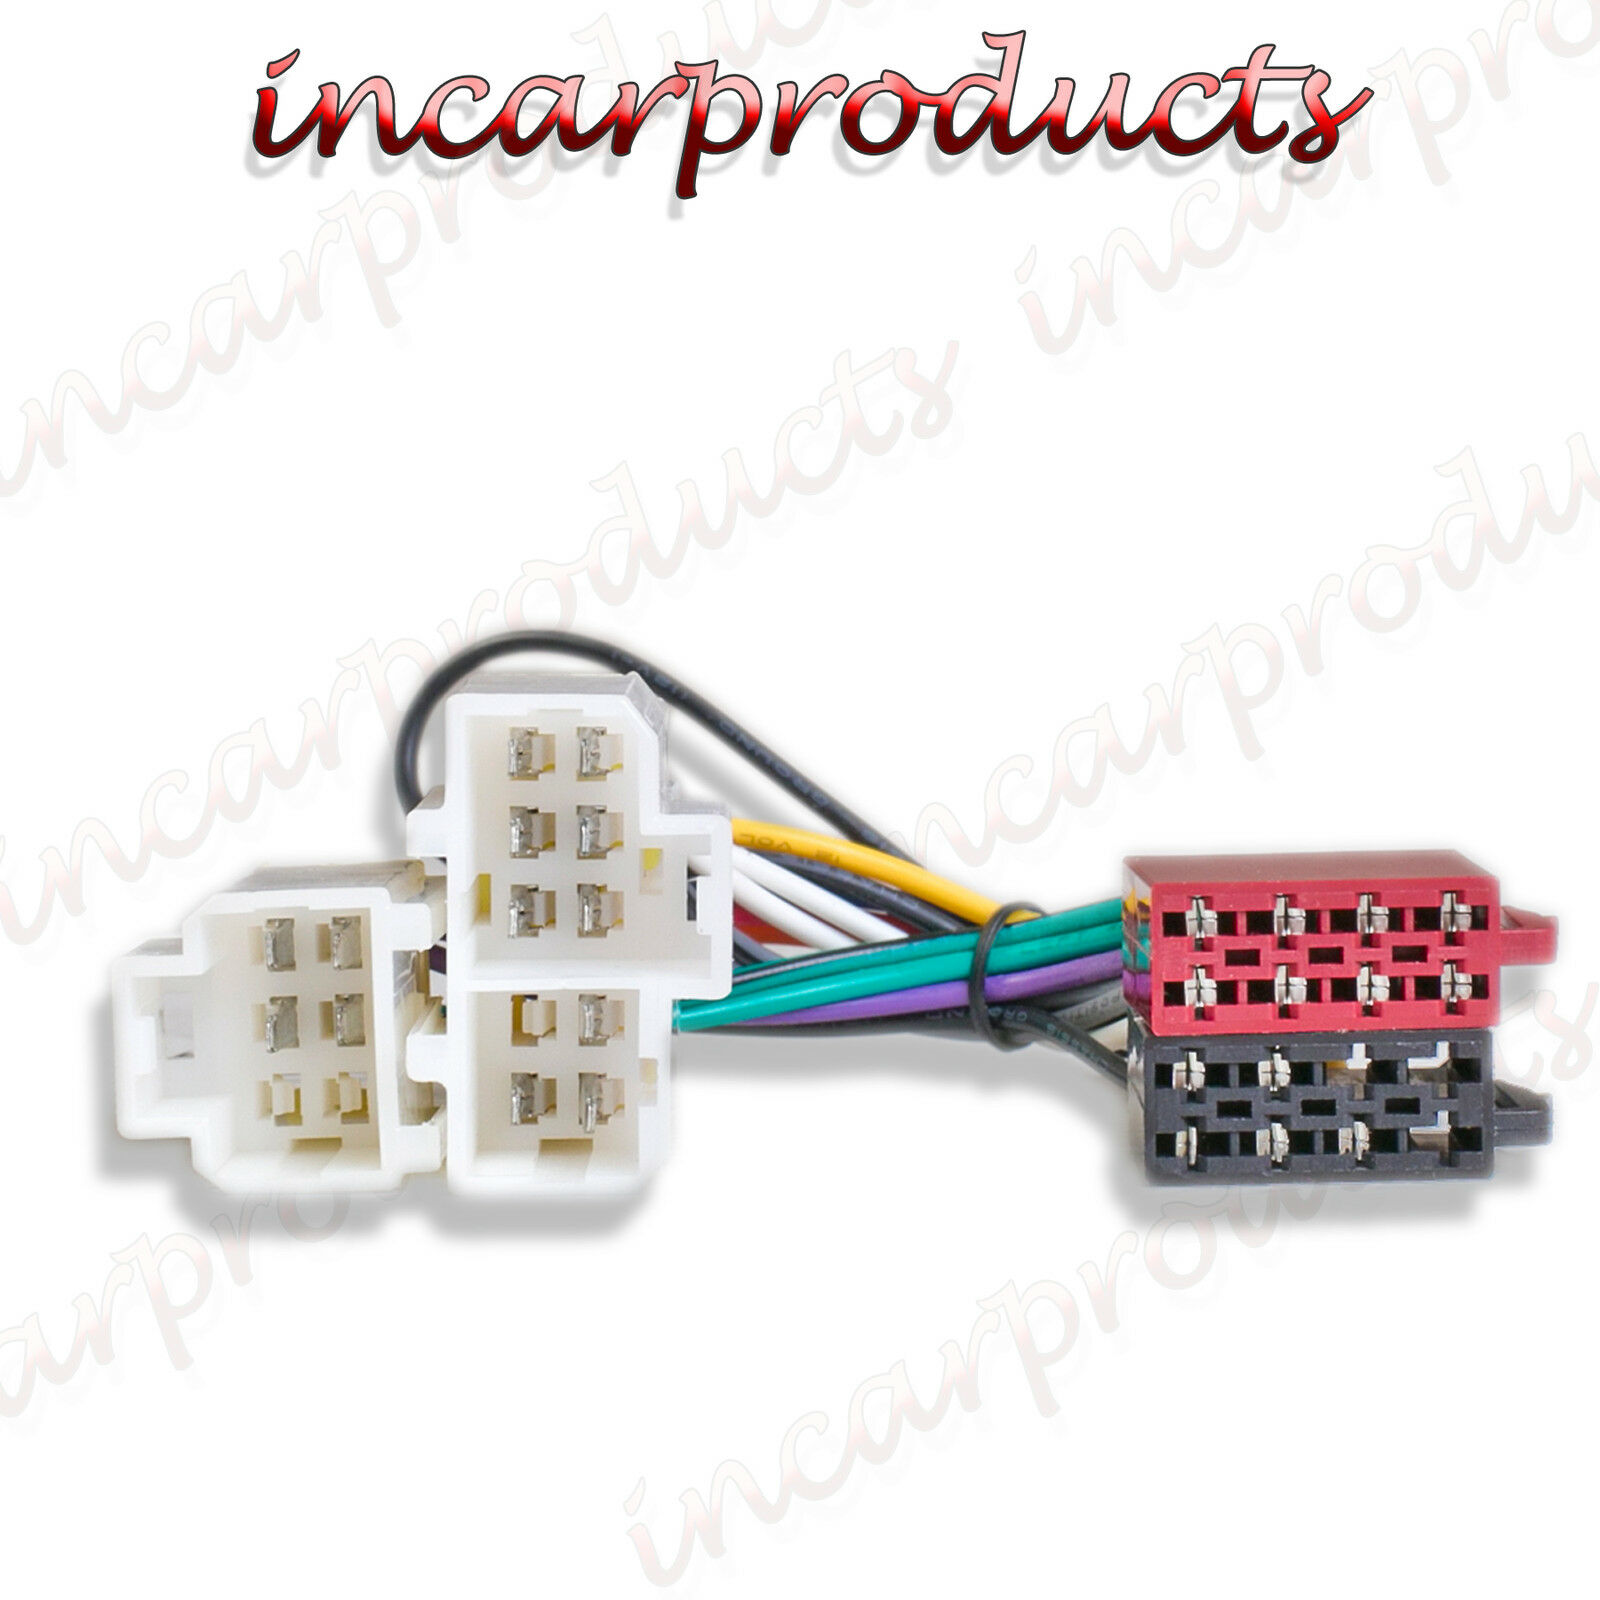 ISO Radio / Stereo harness / adapter / wiring connector for Nissan Patrol >  2000